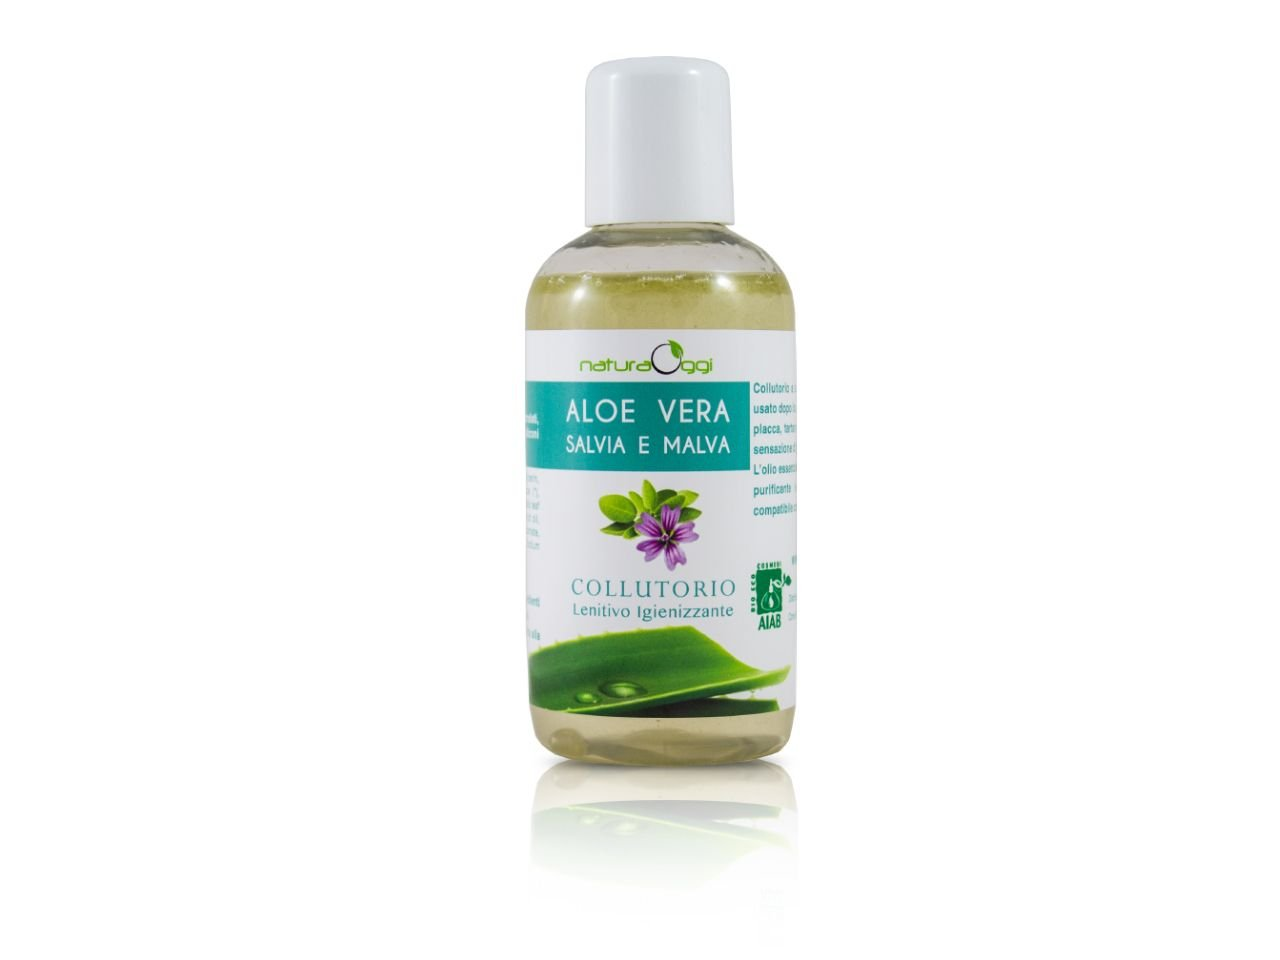 Colluttorio Biologico Aloe Salvia E Malva -1